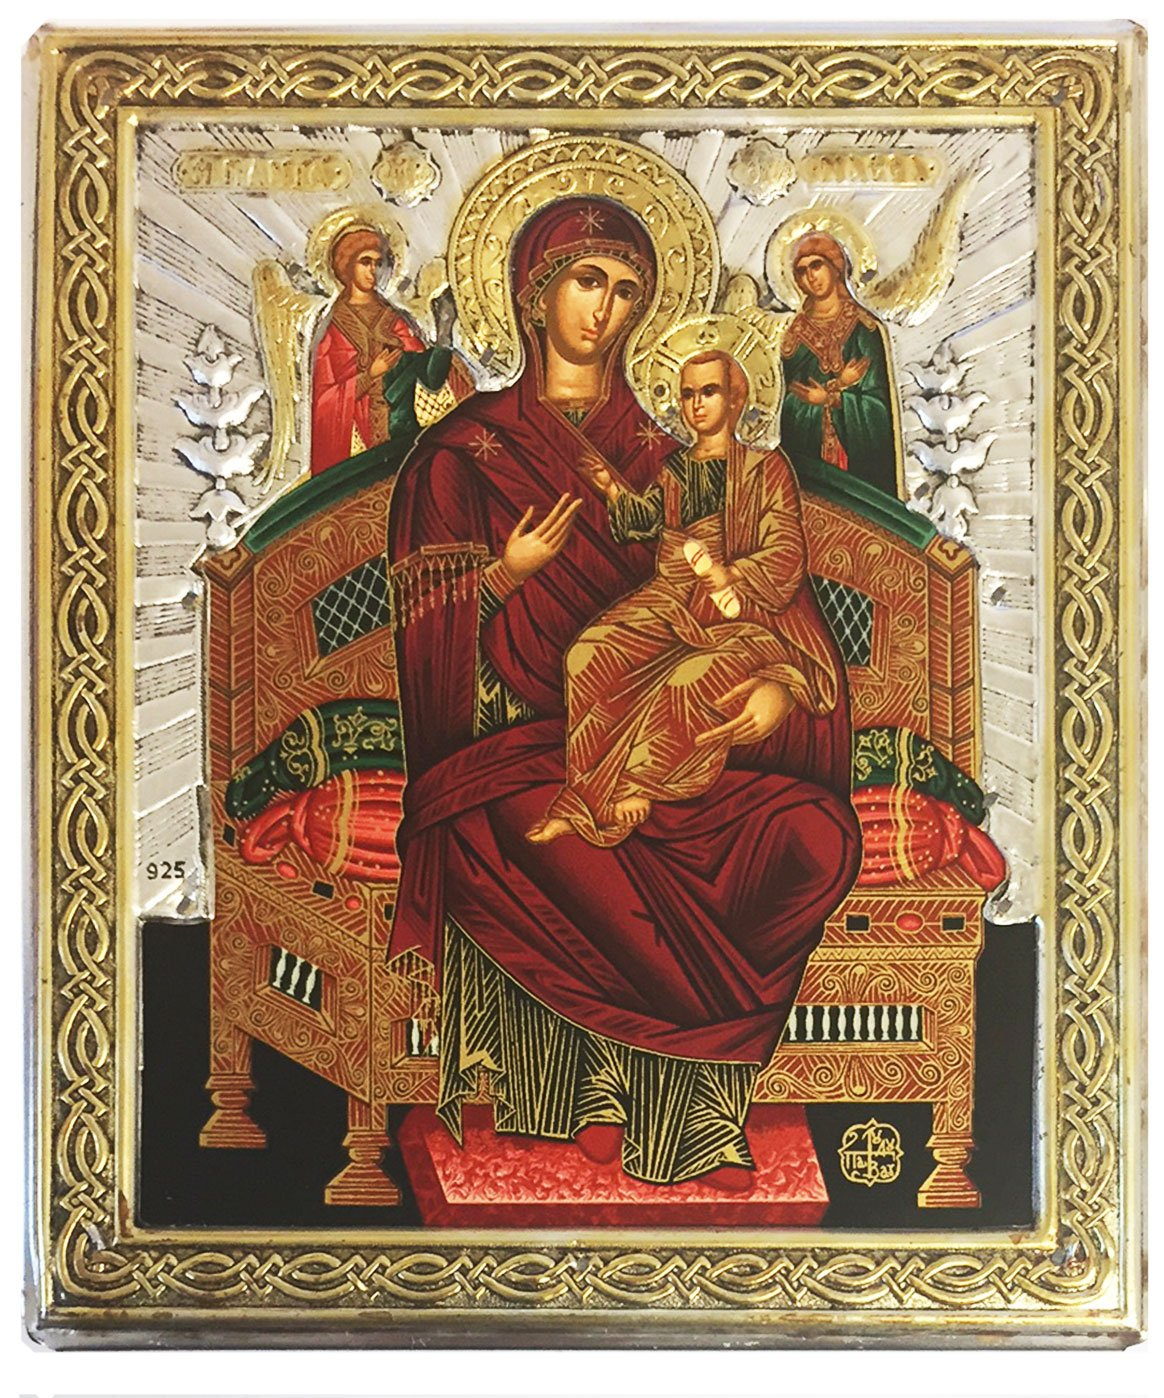 Madonna and Child Tsaritsa Queen of All Icon Greek Serigraph Silver 950 22k Gold Plate 4 3/4 Inch